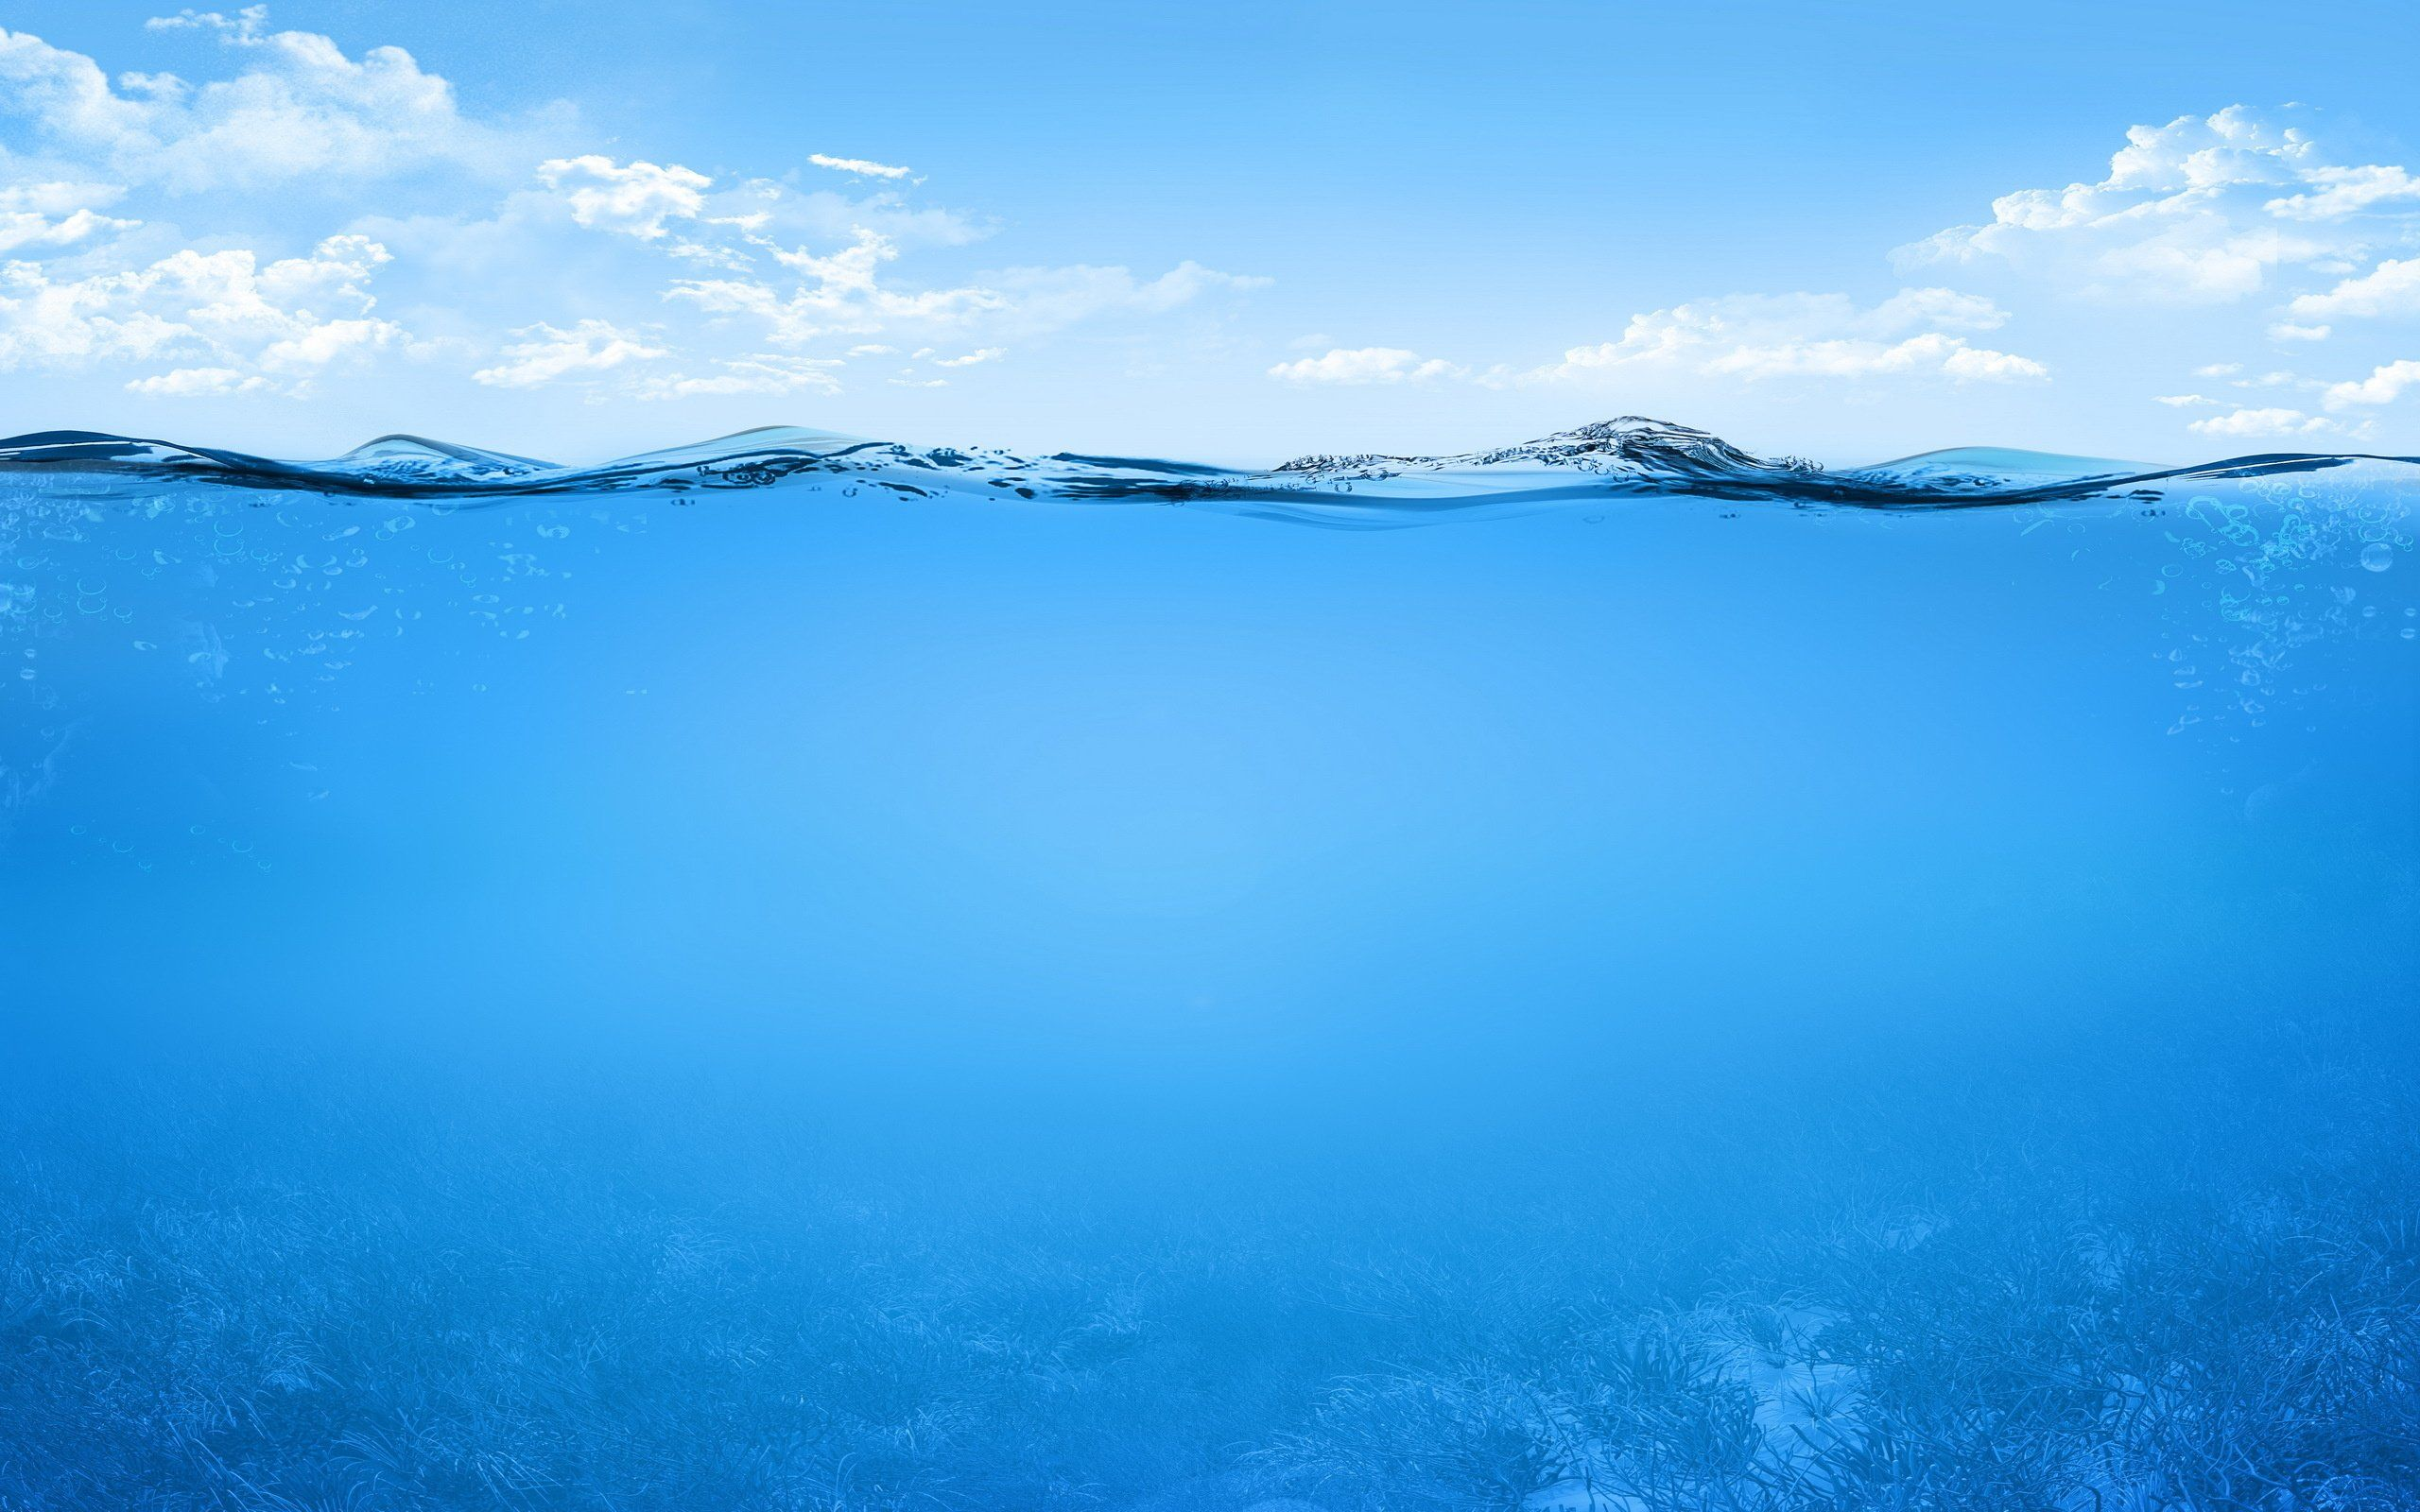 Ocean Sea Lake River Underwater Wallpapers Hd Free